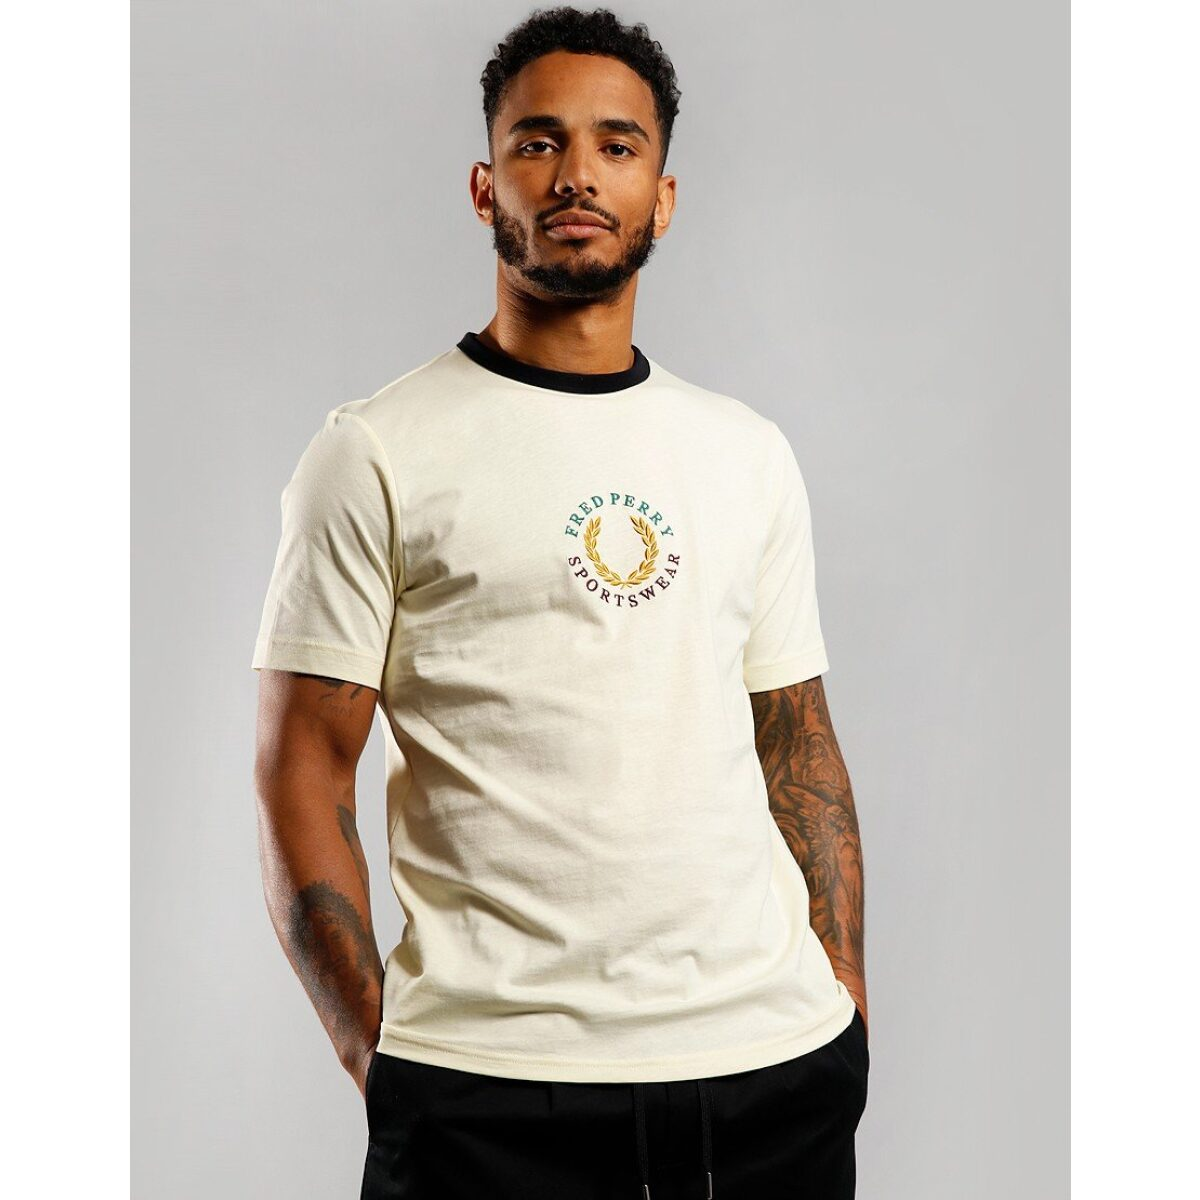 fred perry branded tshirt butter icing 1 870x1110 1